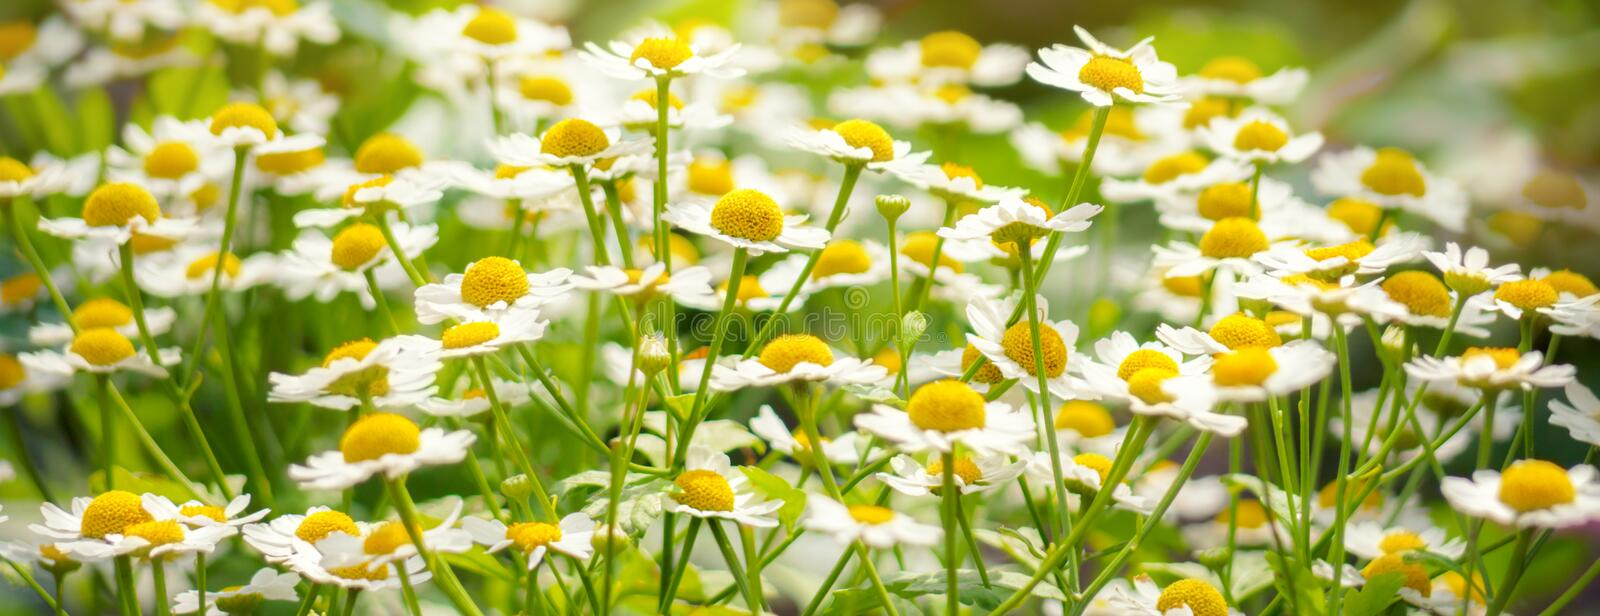 Wild flowers chamomile field daisy plant sunlight summer spring. Background stock images